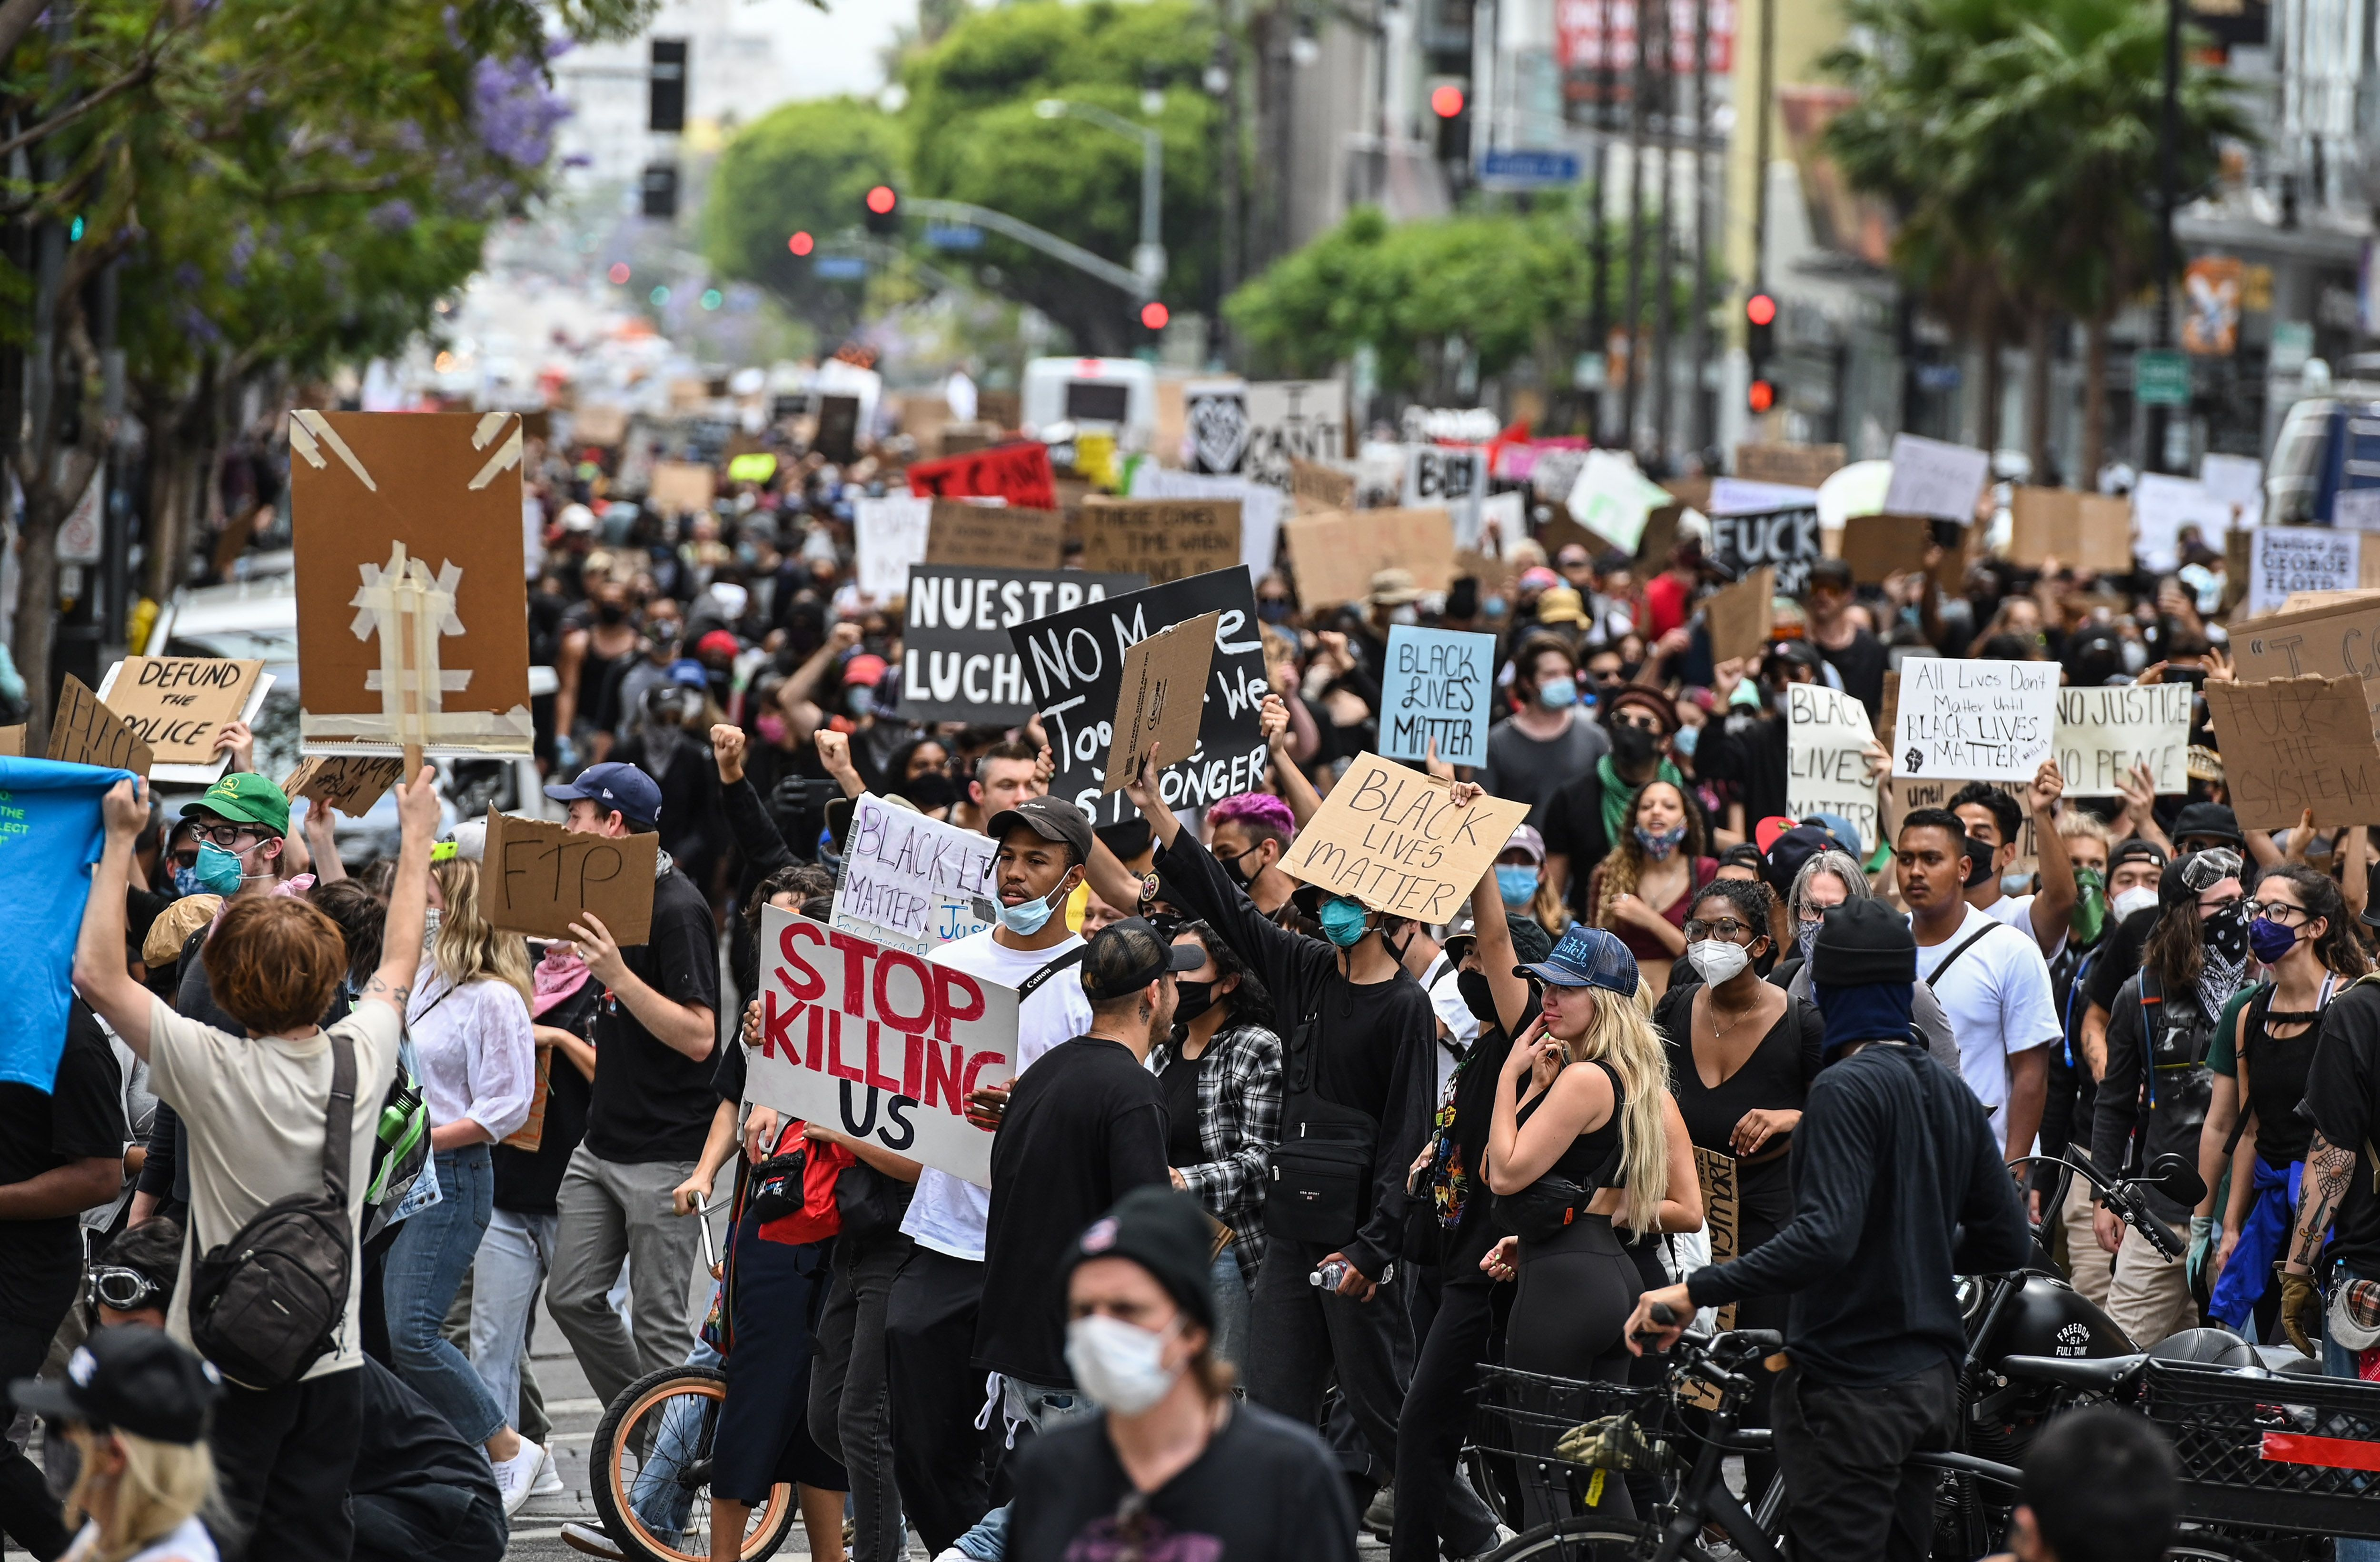 Demonstrators march through the streets of Hollywood, California